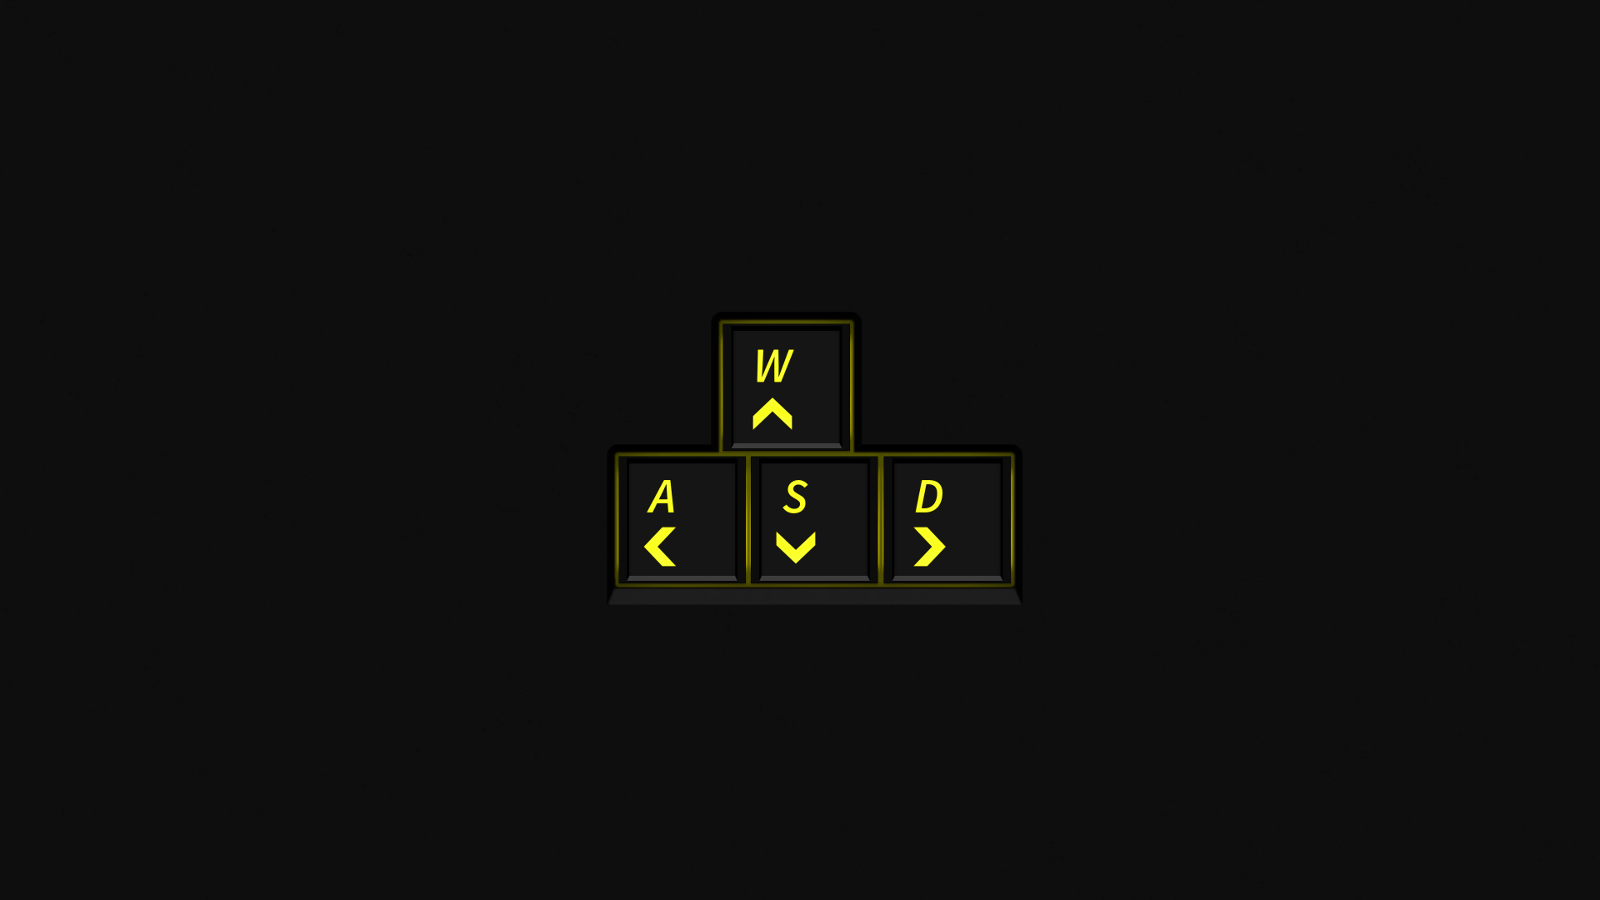 https://s3.amazonaws.com/null-src/images/posts/clevo-p-series-wasd-wallpapers/ClevoWASDYellow_1600.png